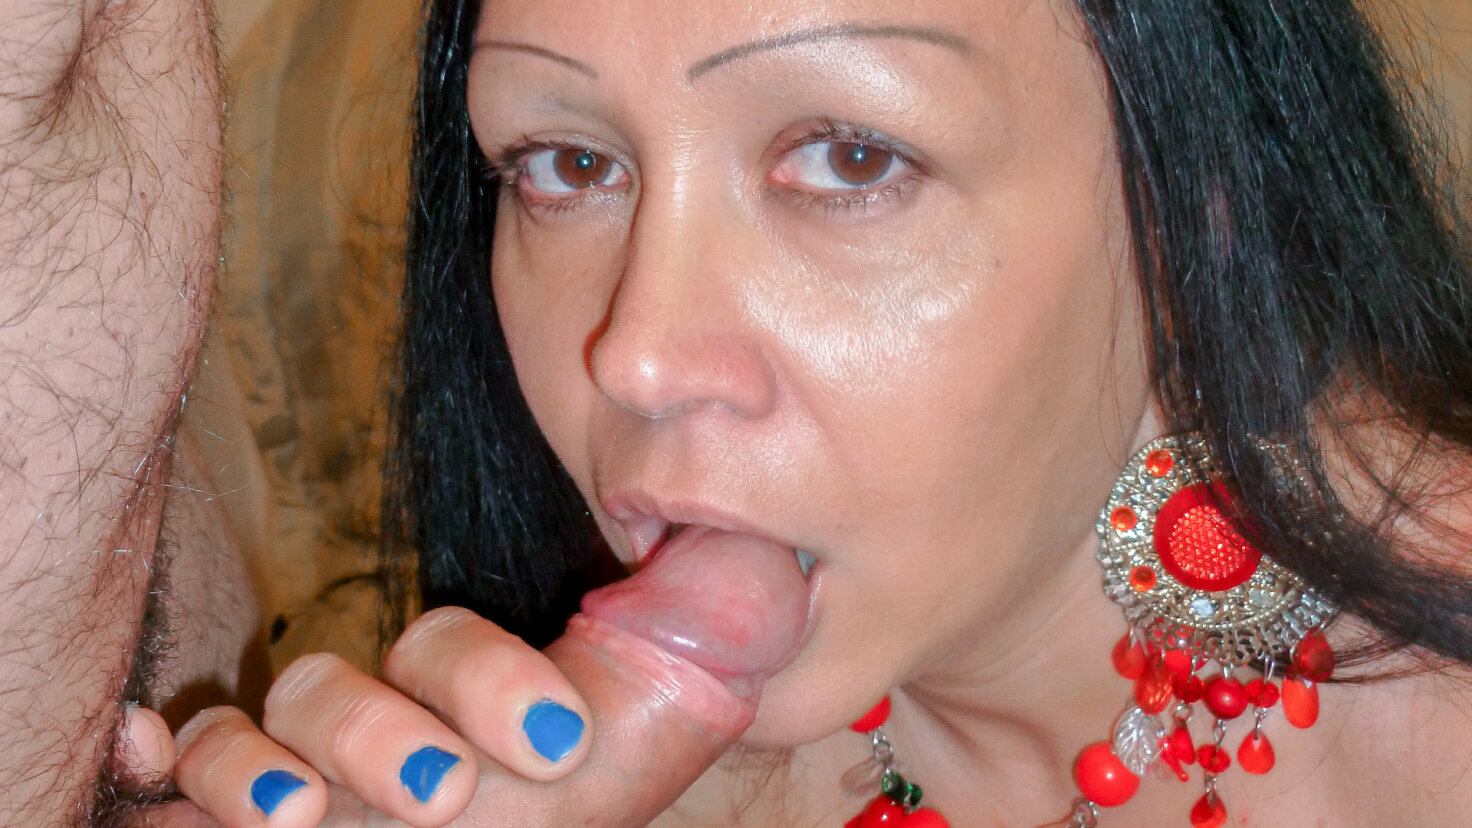 Mature Italian lady eats cum in raunchy amateur hard fuck